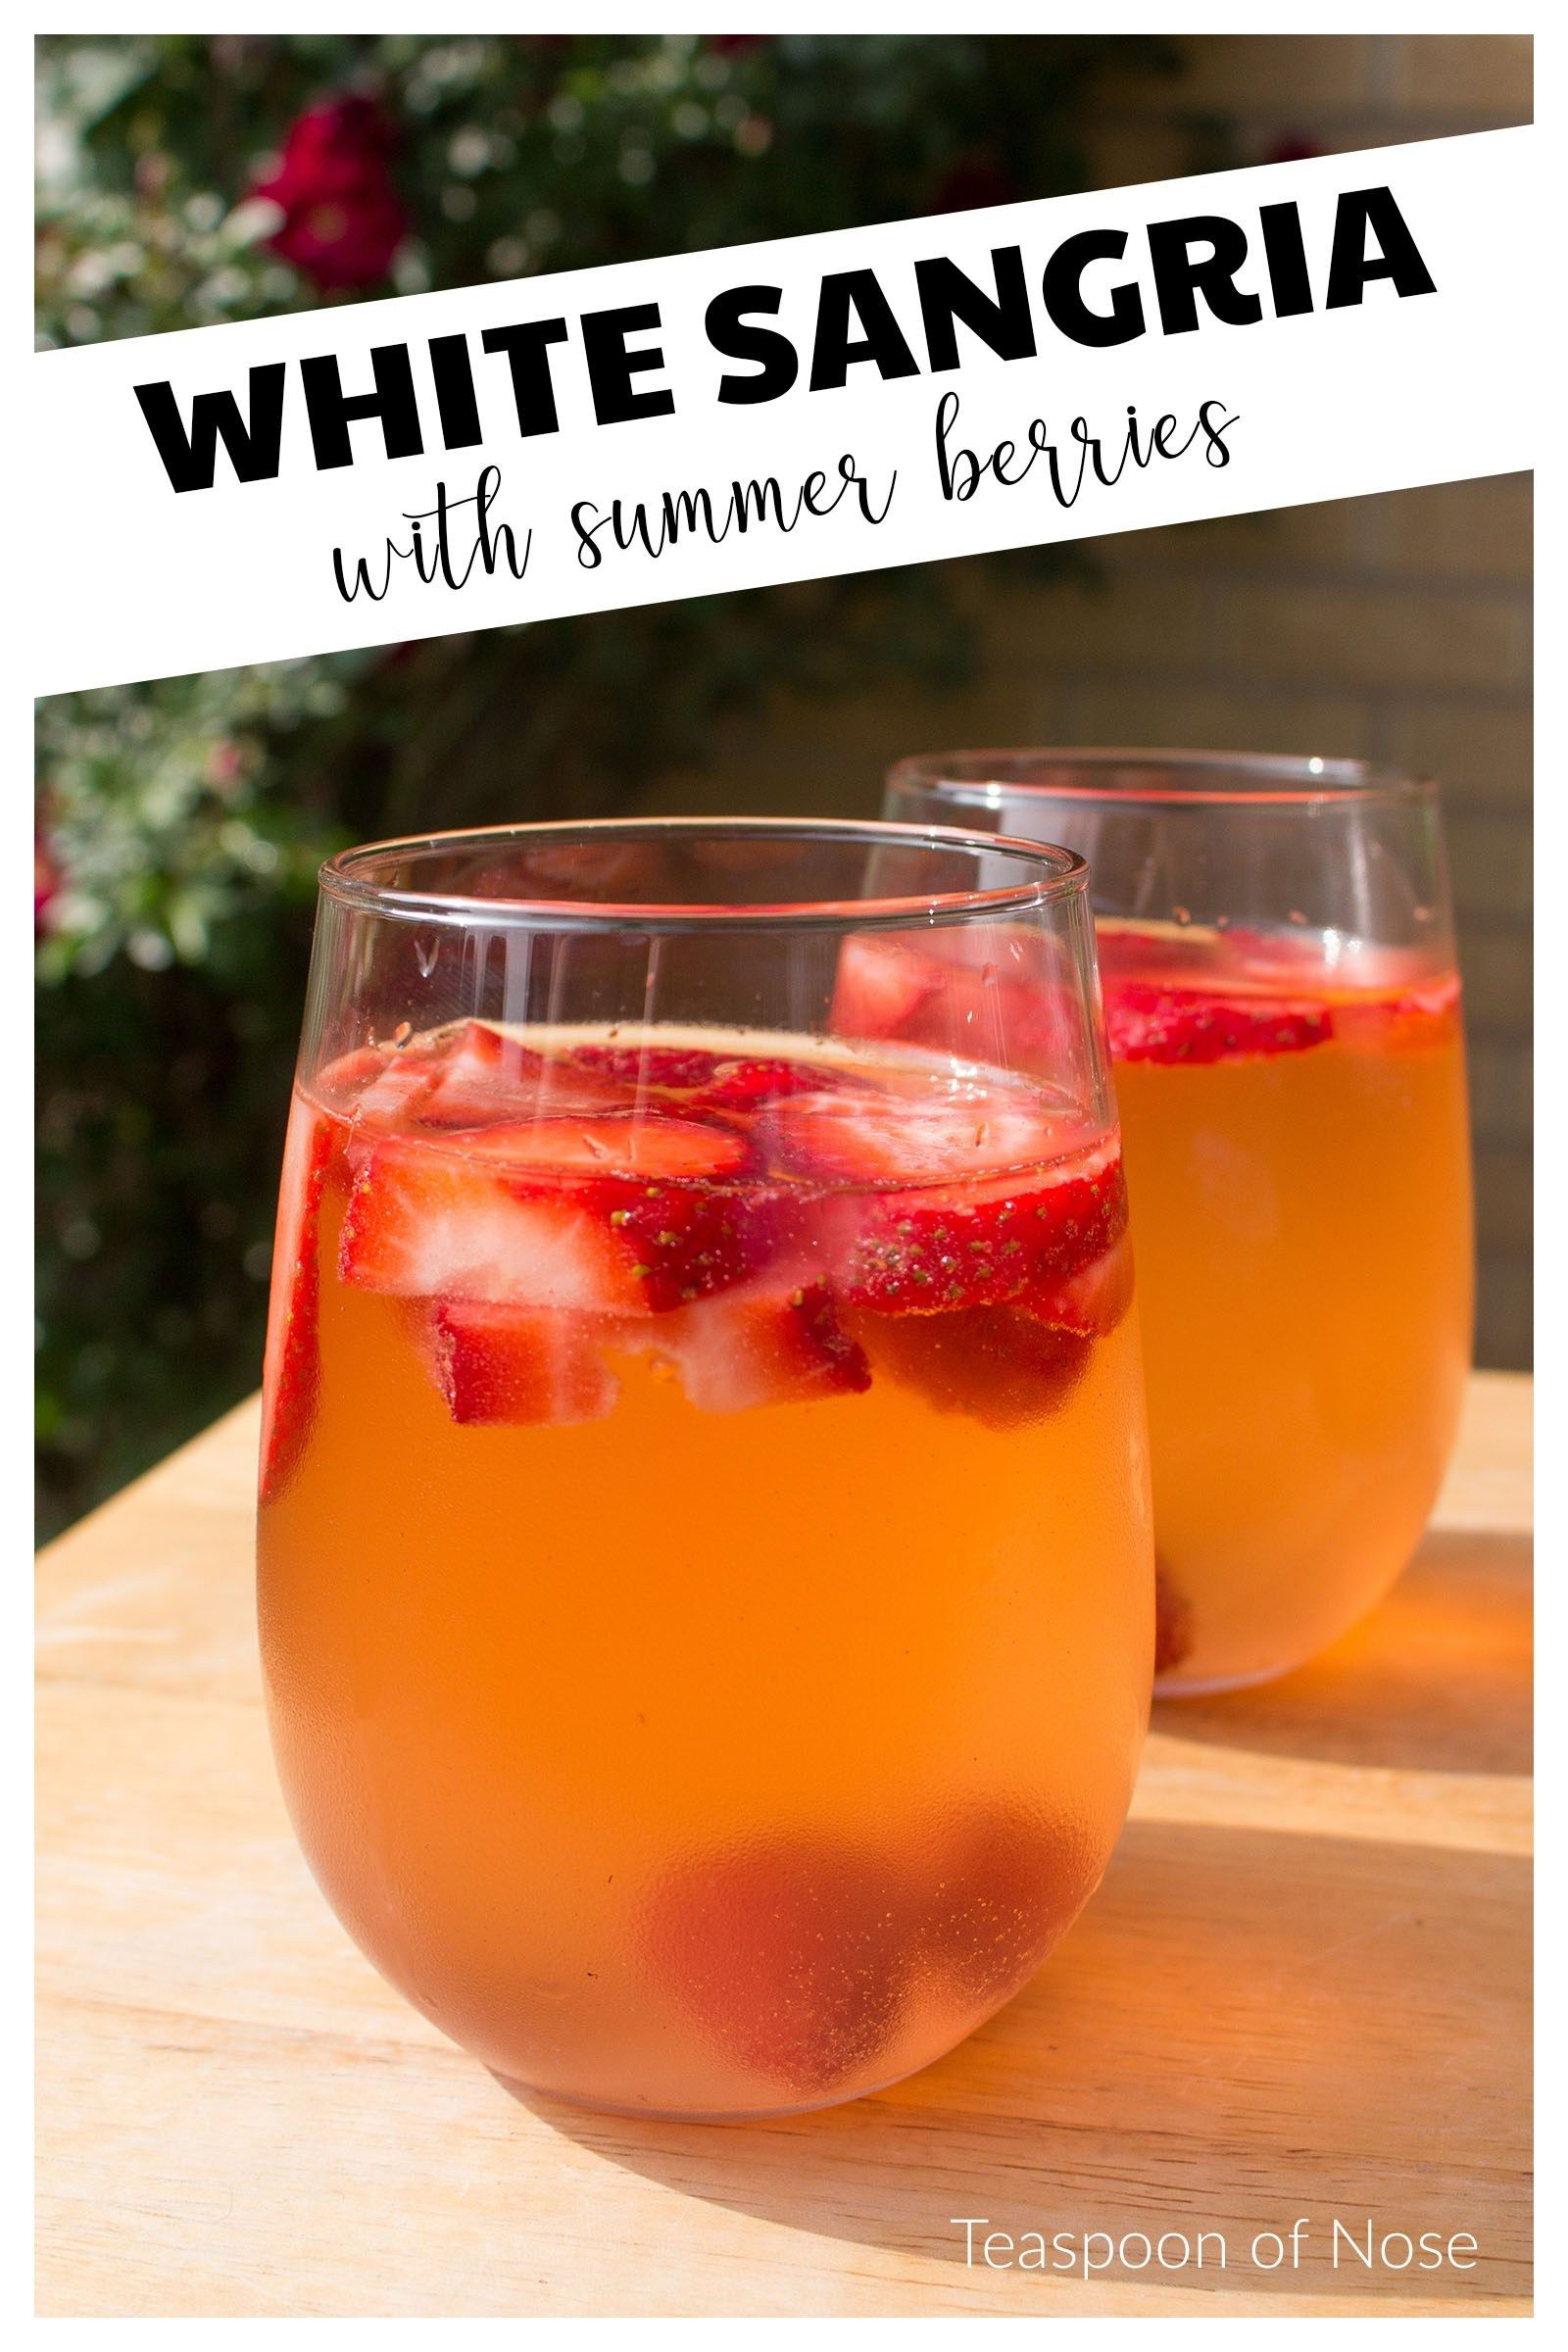 Berry Infused White Sangria Teaspoon Of Nose Recipe White Sangria Sangria Berries Recipes